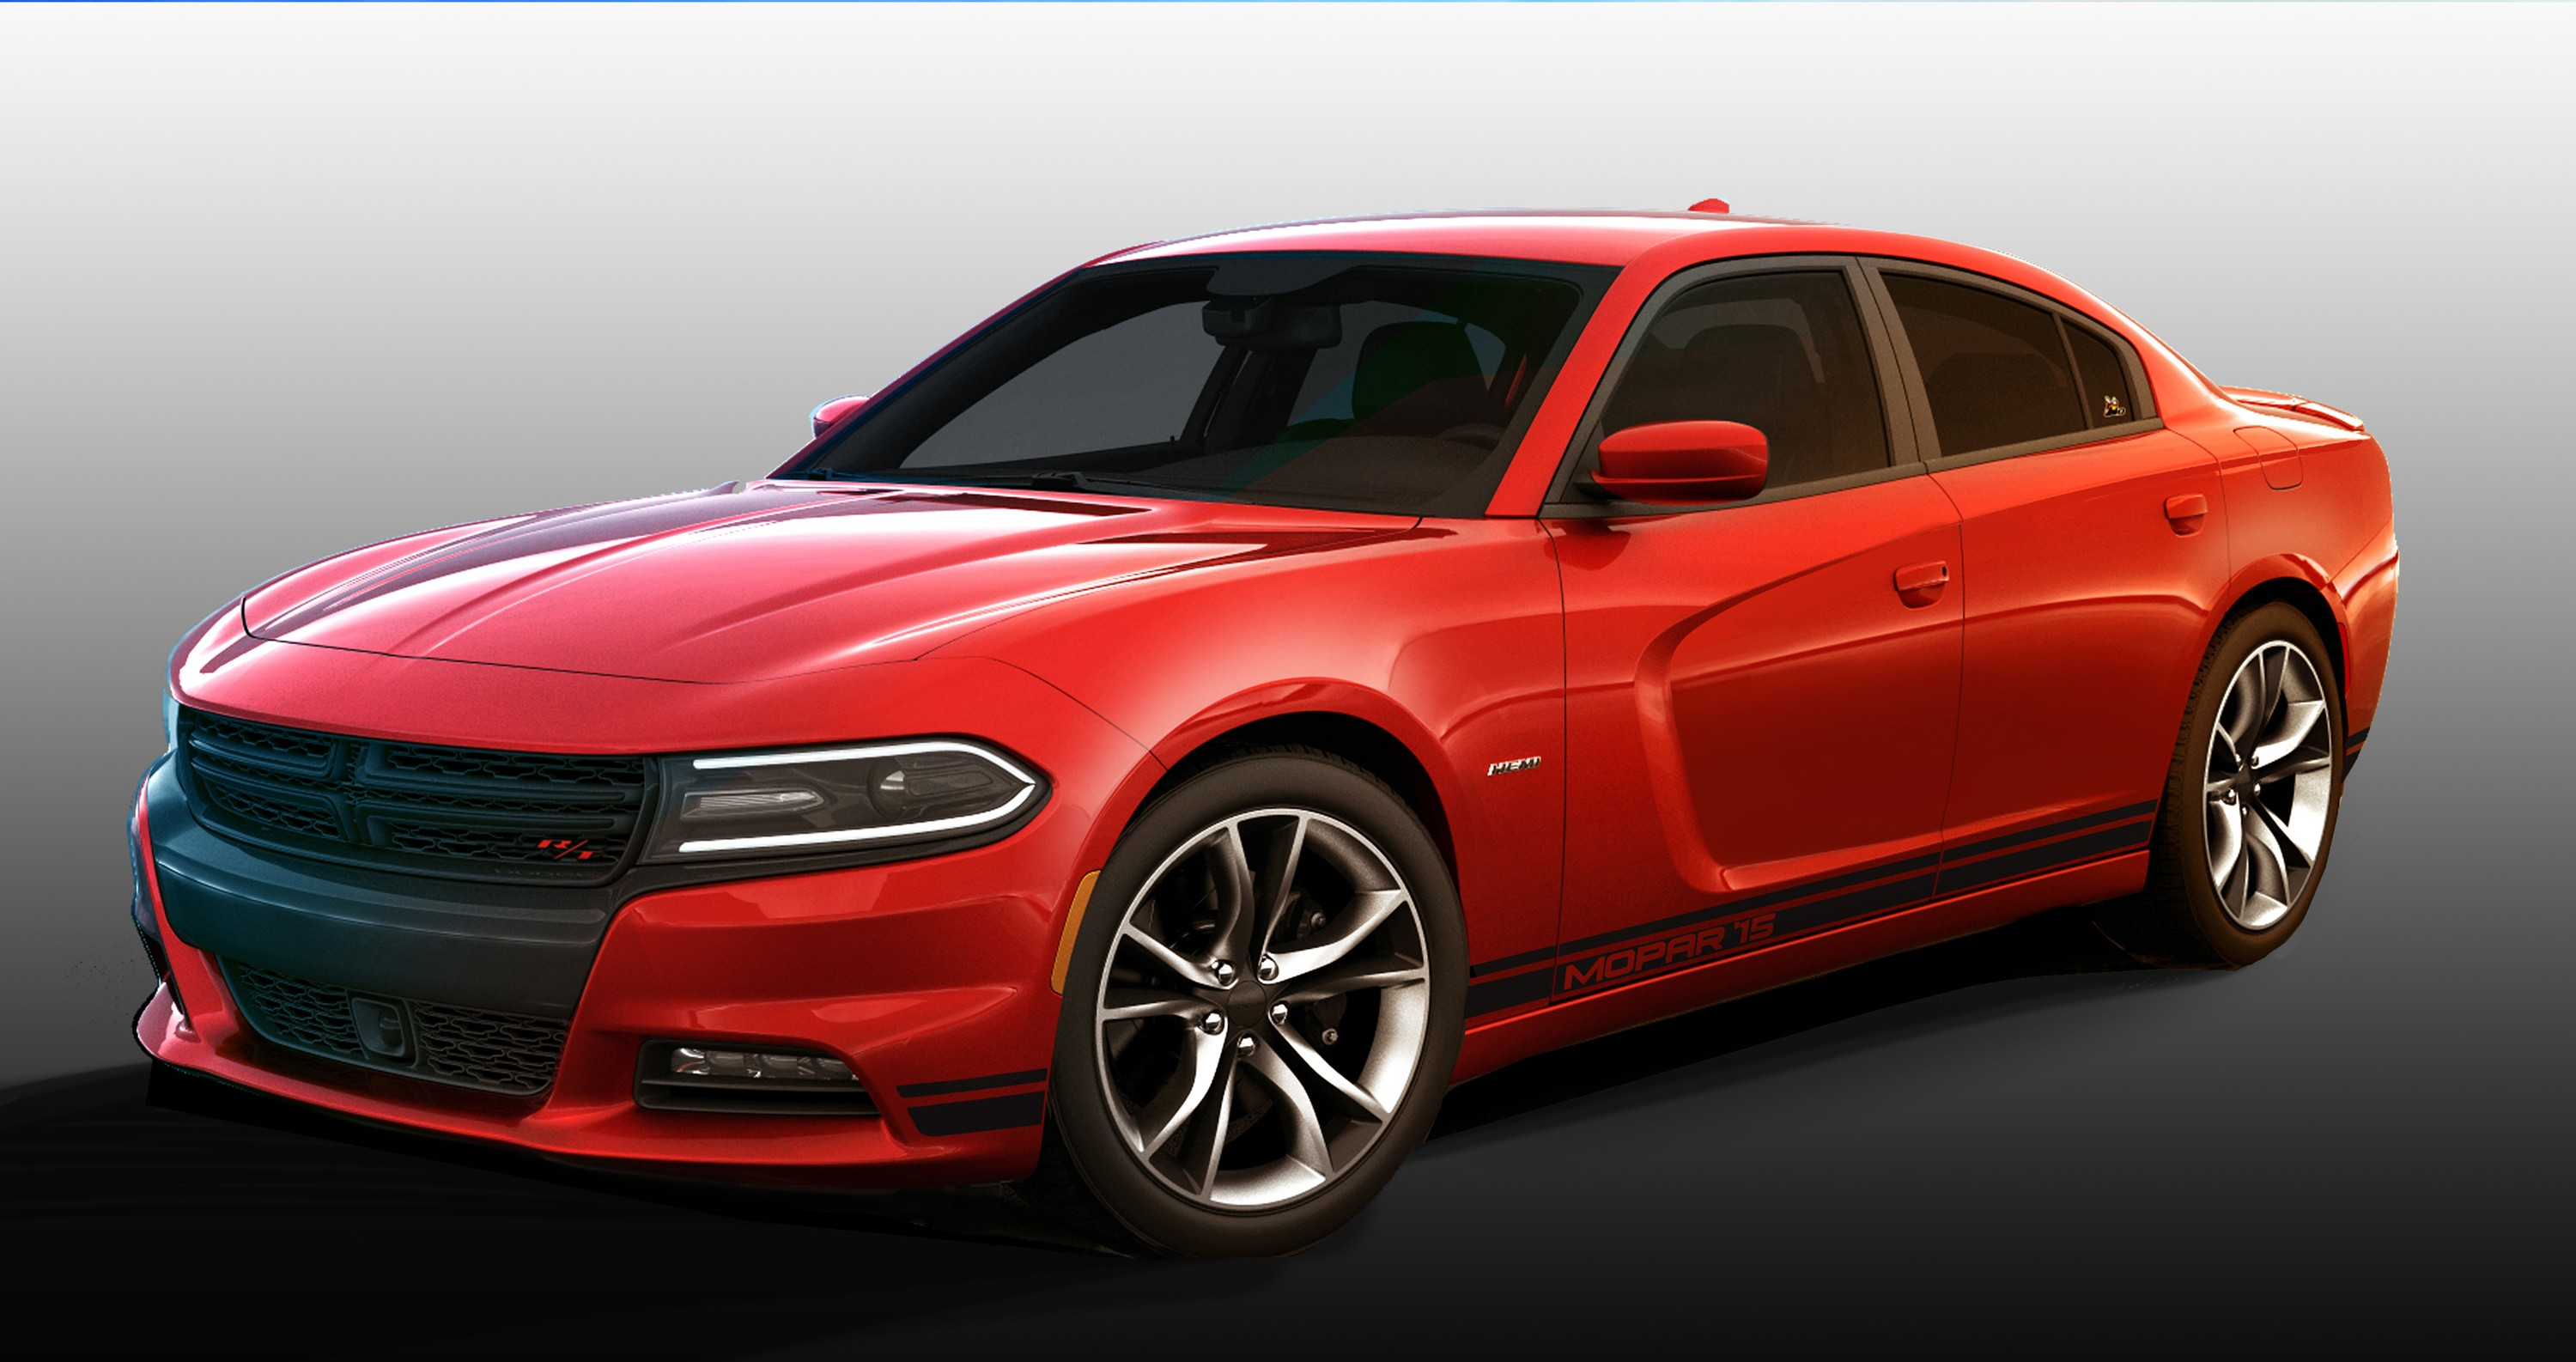 mopar 15 performance kit enhances the 2015 dodge charger r t autoevolution. Black Bedroom Furniture Sets. Home Design Ideas